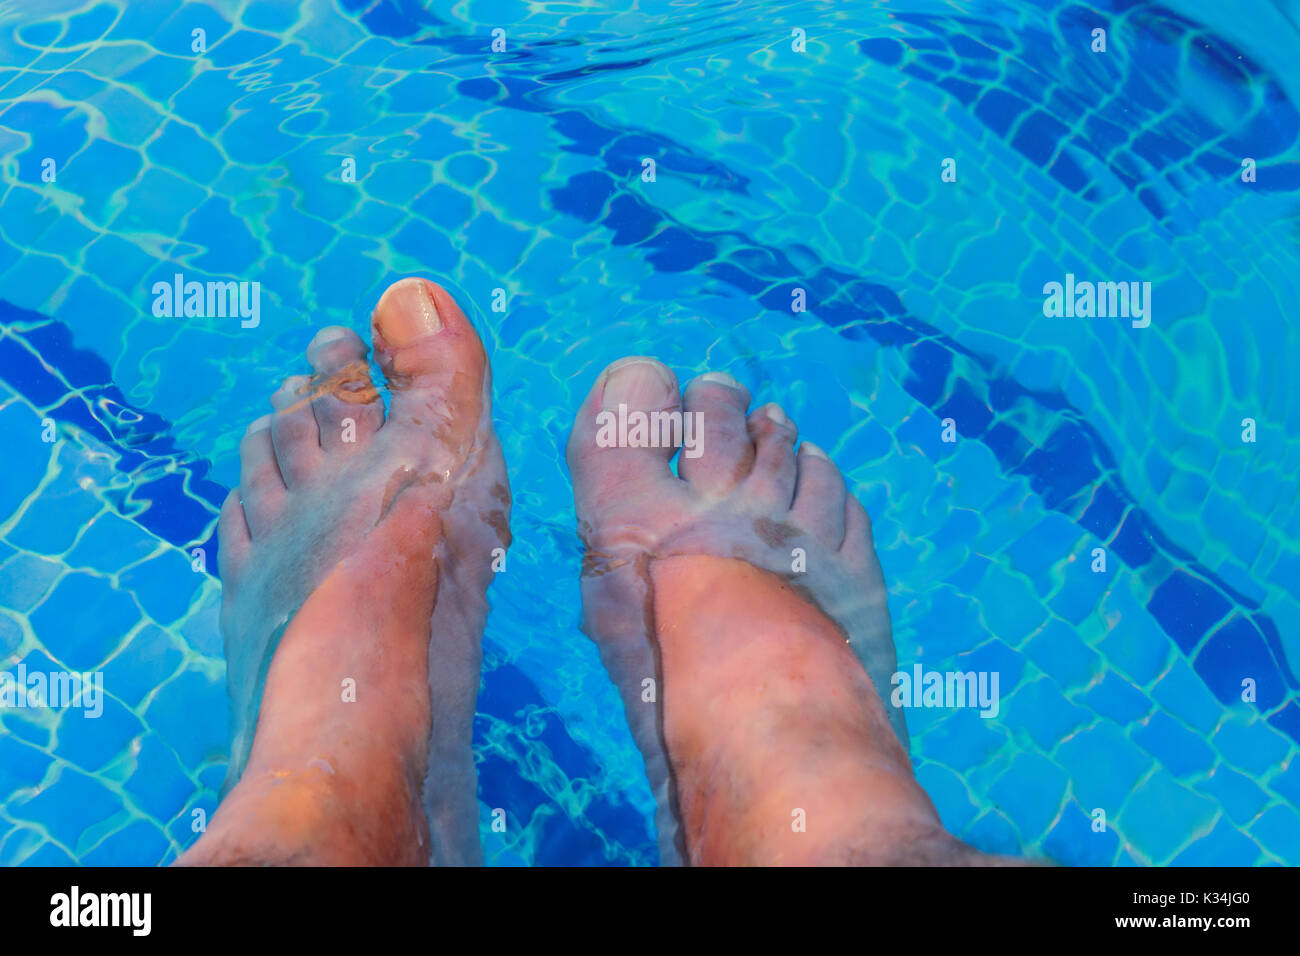 Men feet in a beautiful swimming pool with blue tiles. - Stock Image